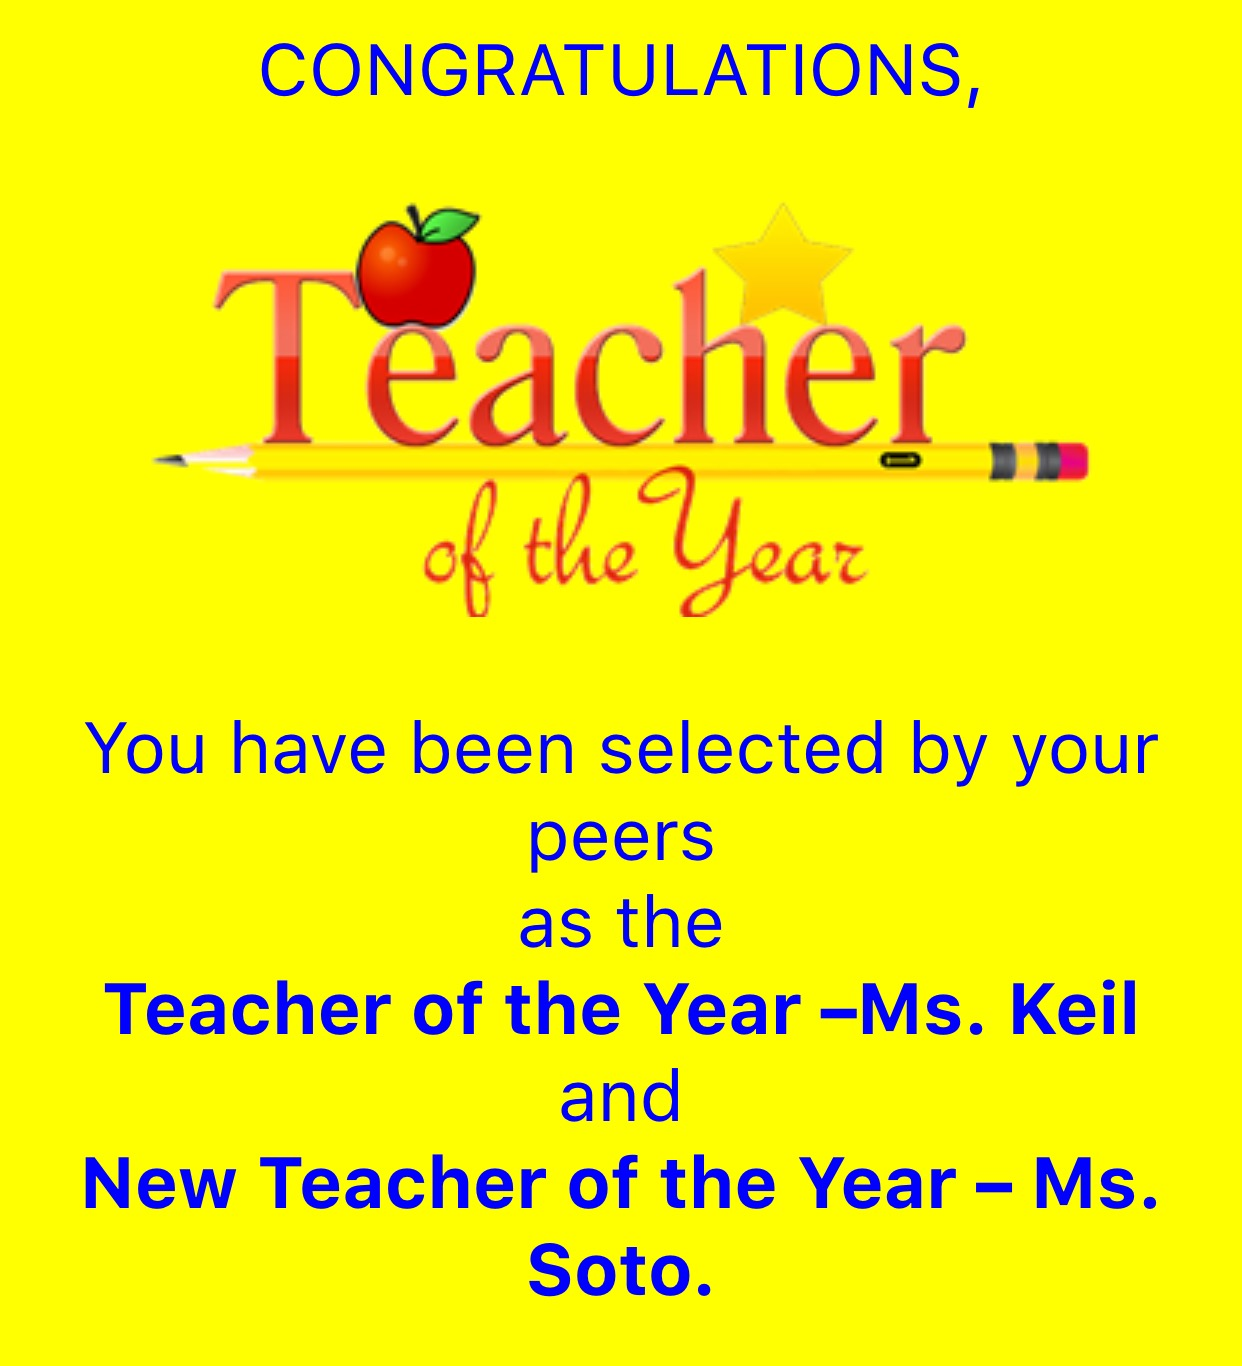 Teacher of the year 2015/2016